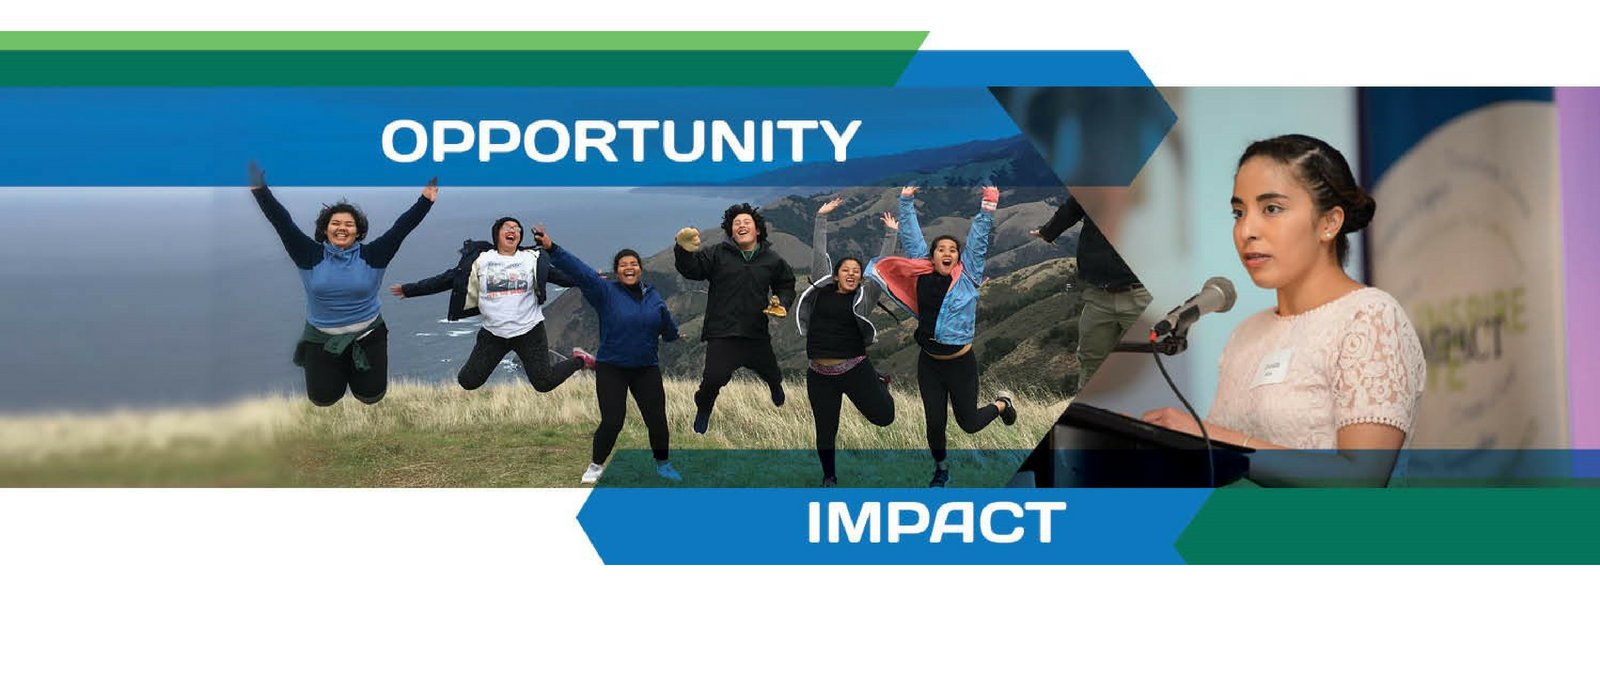 2017 Annual Report: Opportunity & Impact